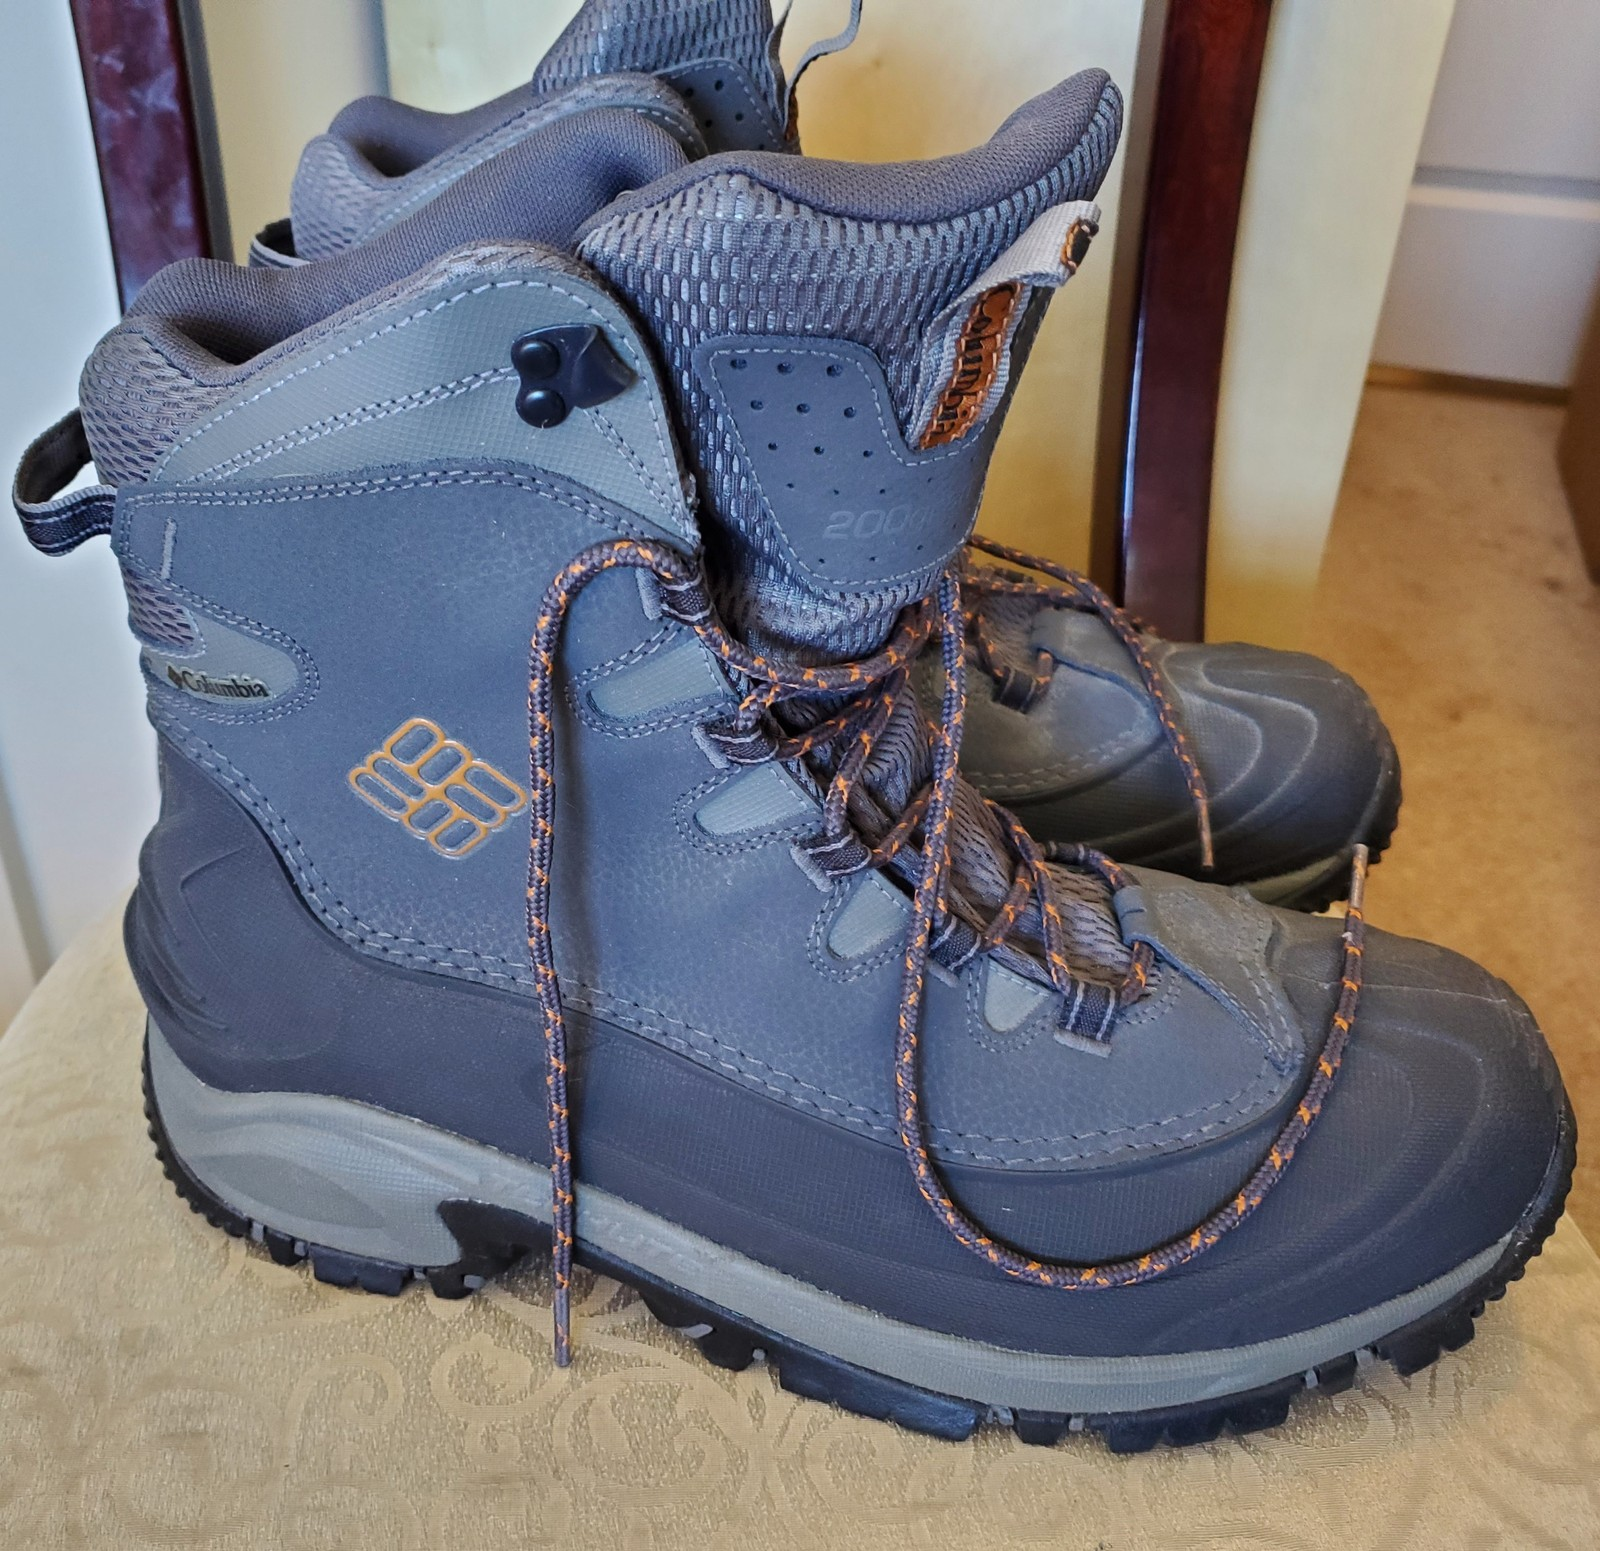 Primary image for Mens Boots Columbia Bugaboot Snow Boot NEW Charcoal Grey size 13